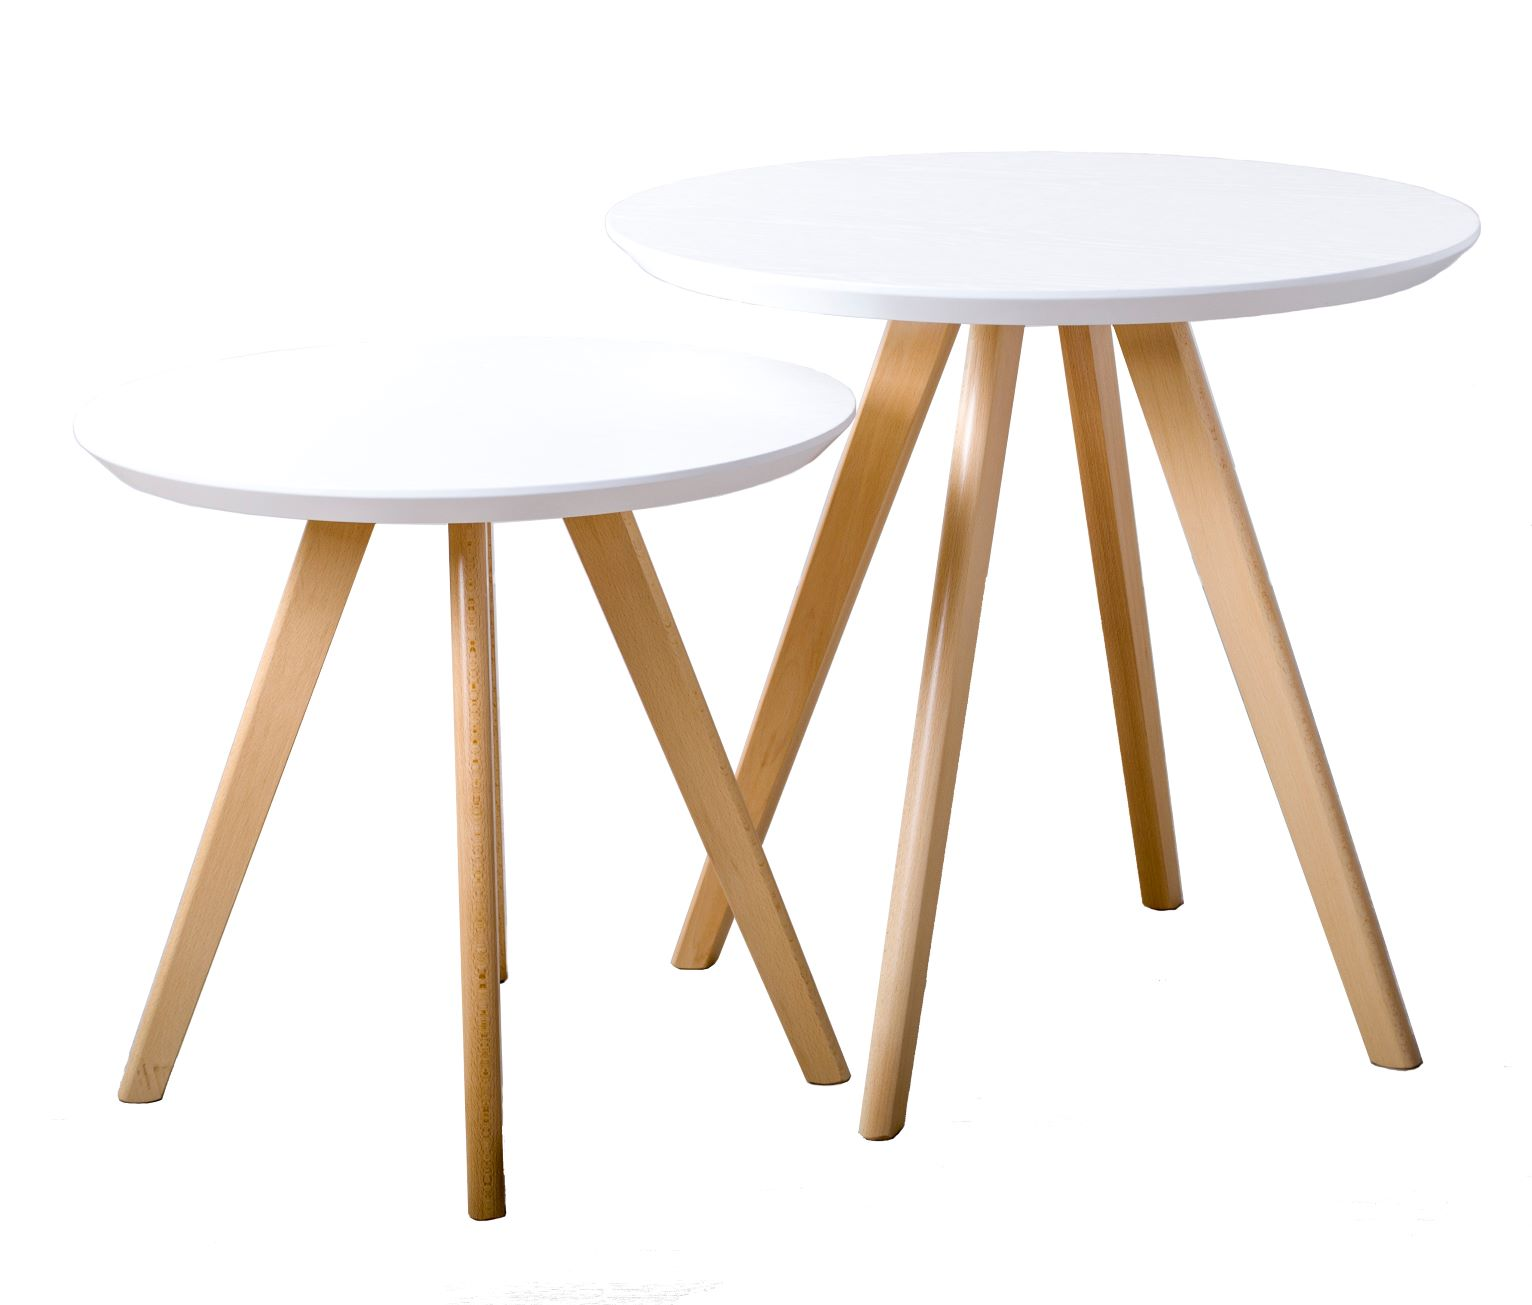 Balance Coffee Tables (double) from GVA Interiors